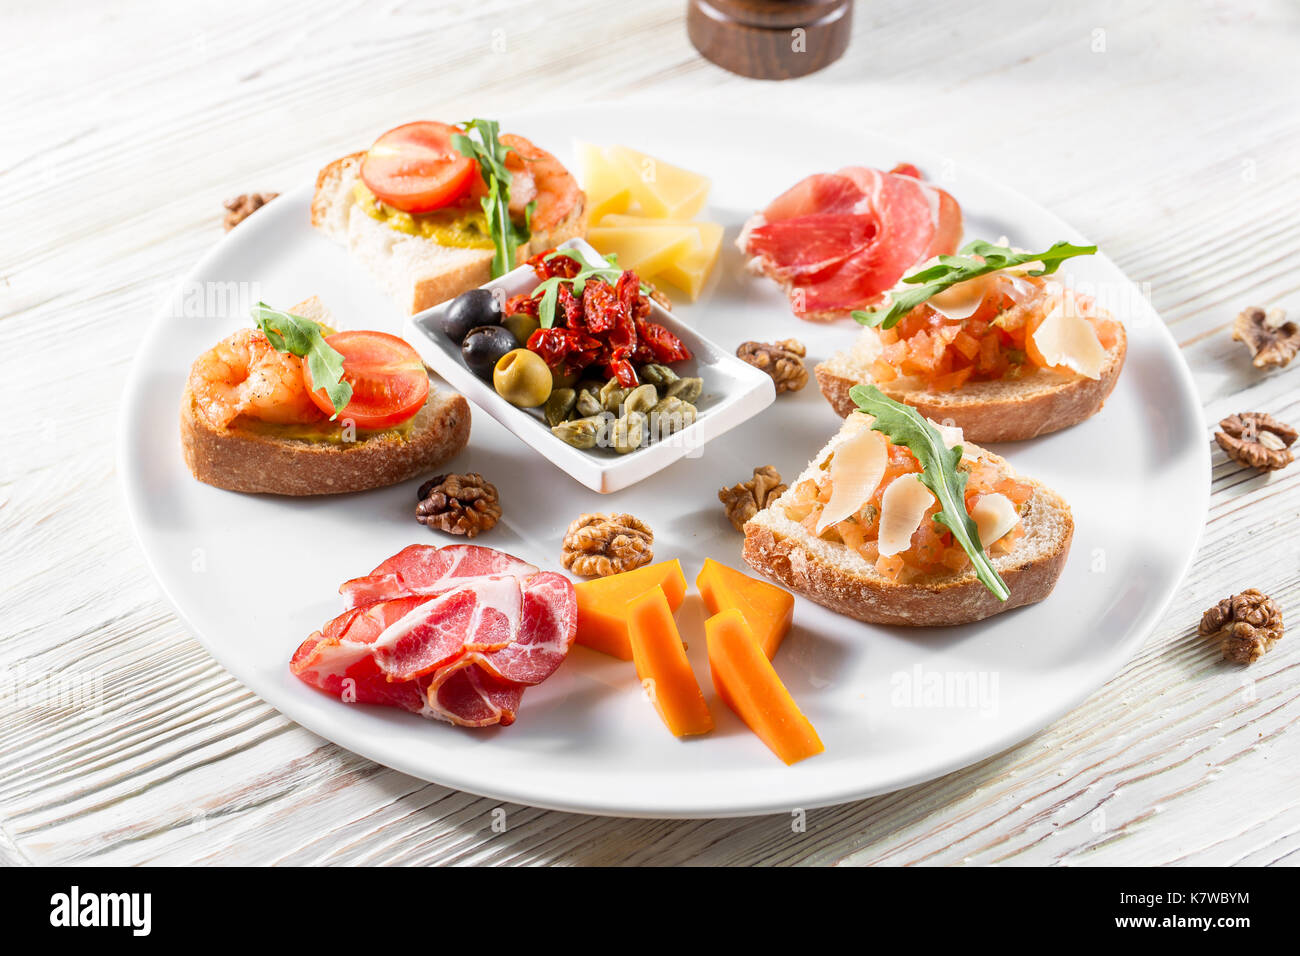 Selection of tasty bruschetta or canapes on taosted baguette and quark cheese topped with smoked salmon, shrimp. - Stock Image